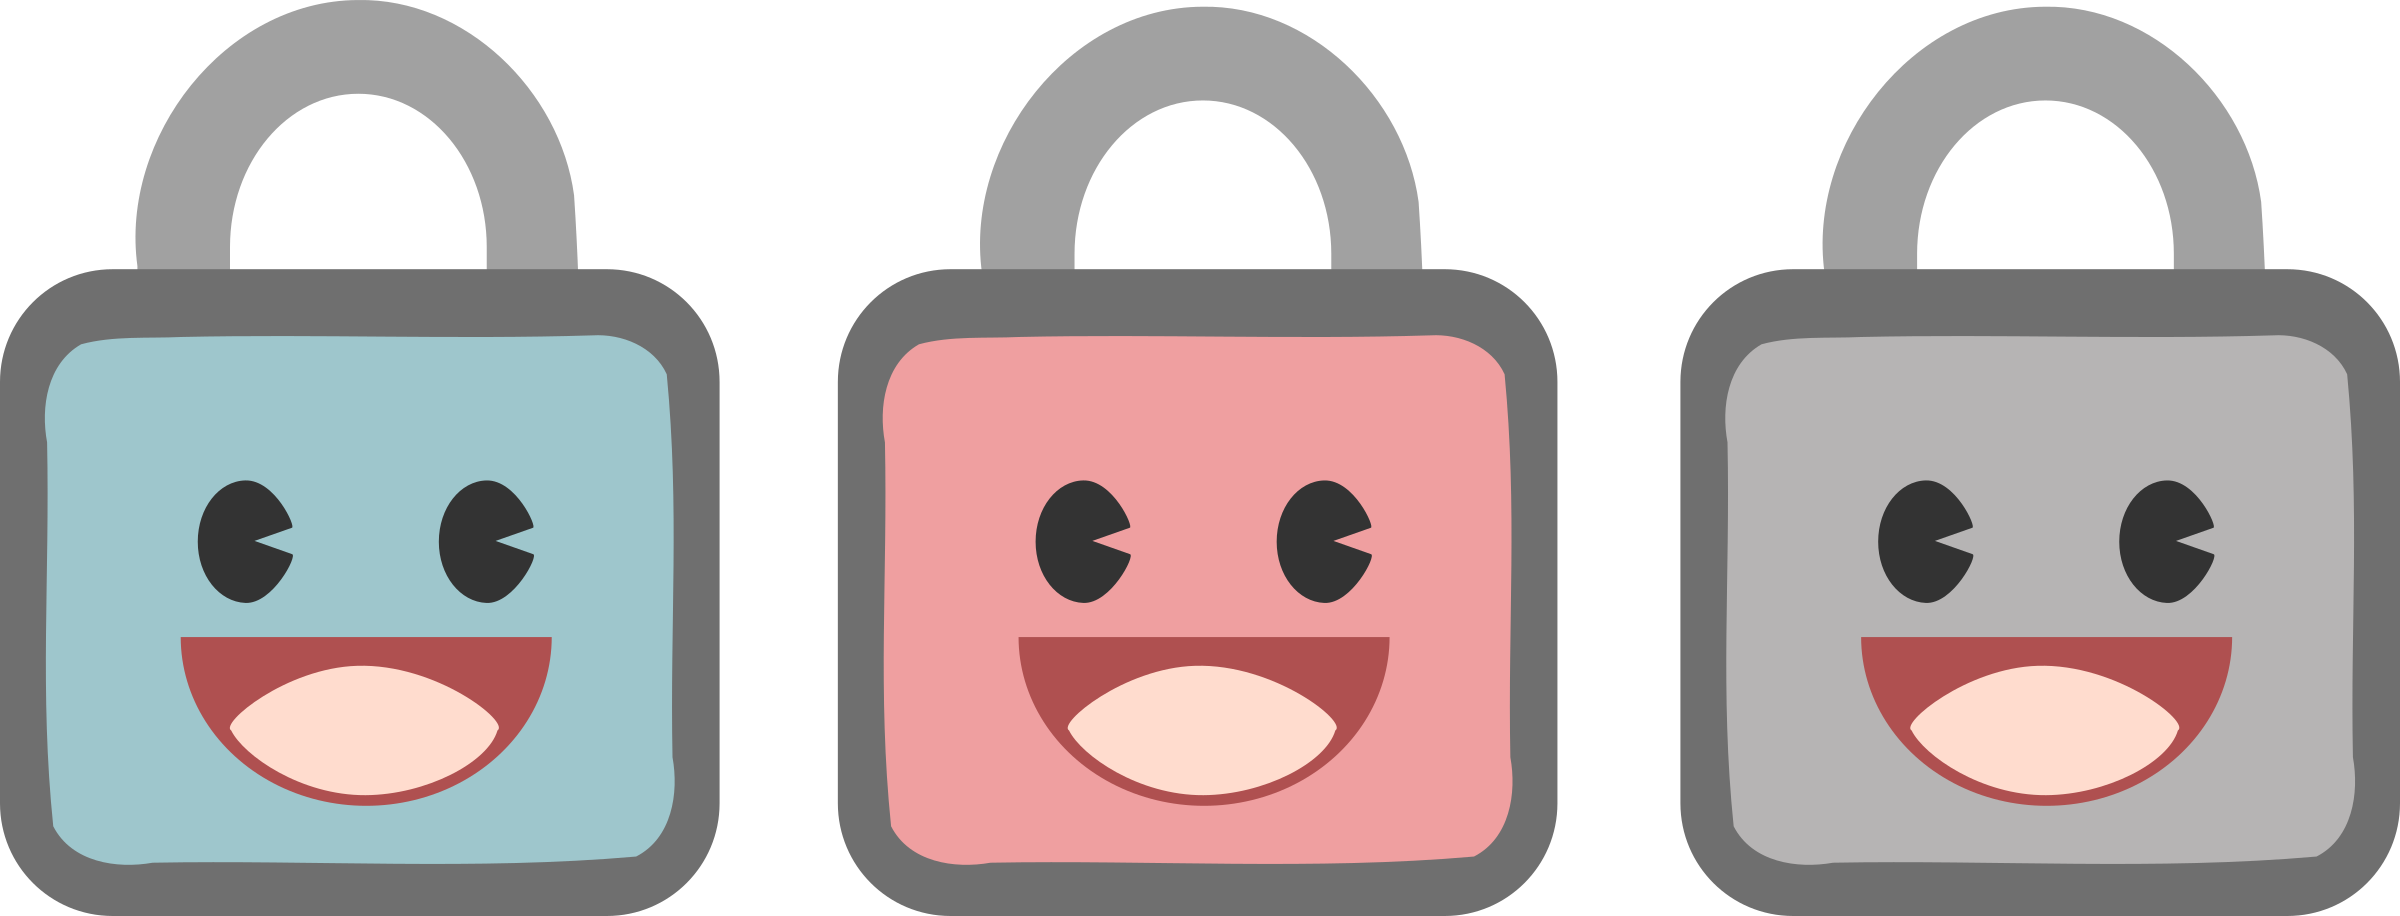 Cute lock icons by anarres